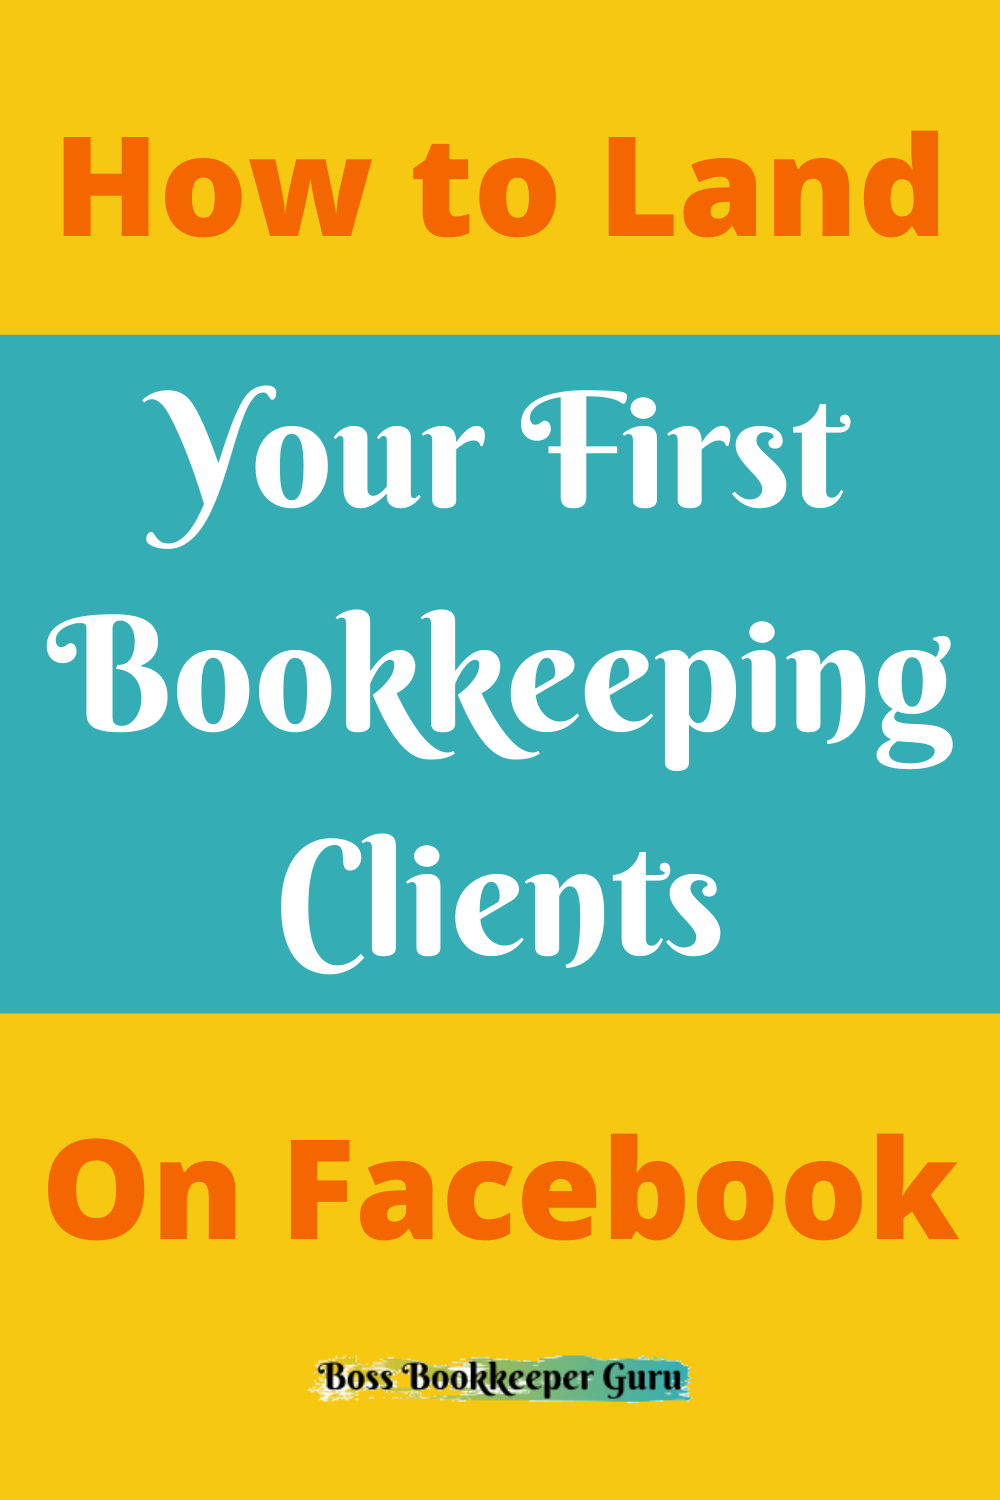 Pin on How to Get Clients